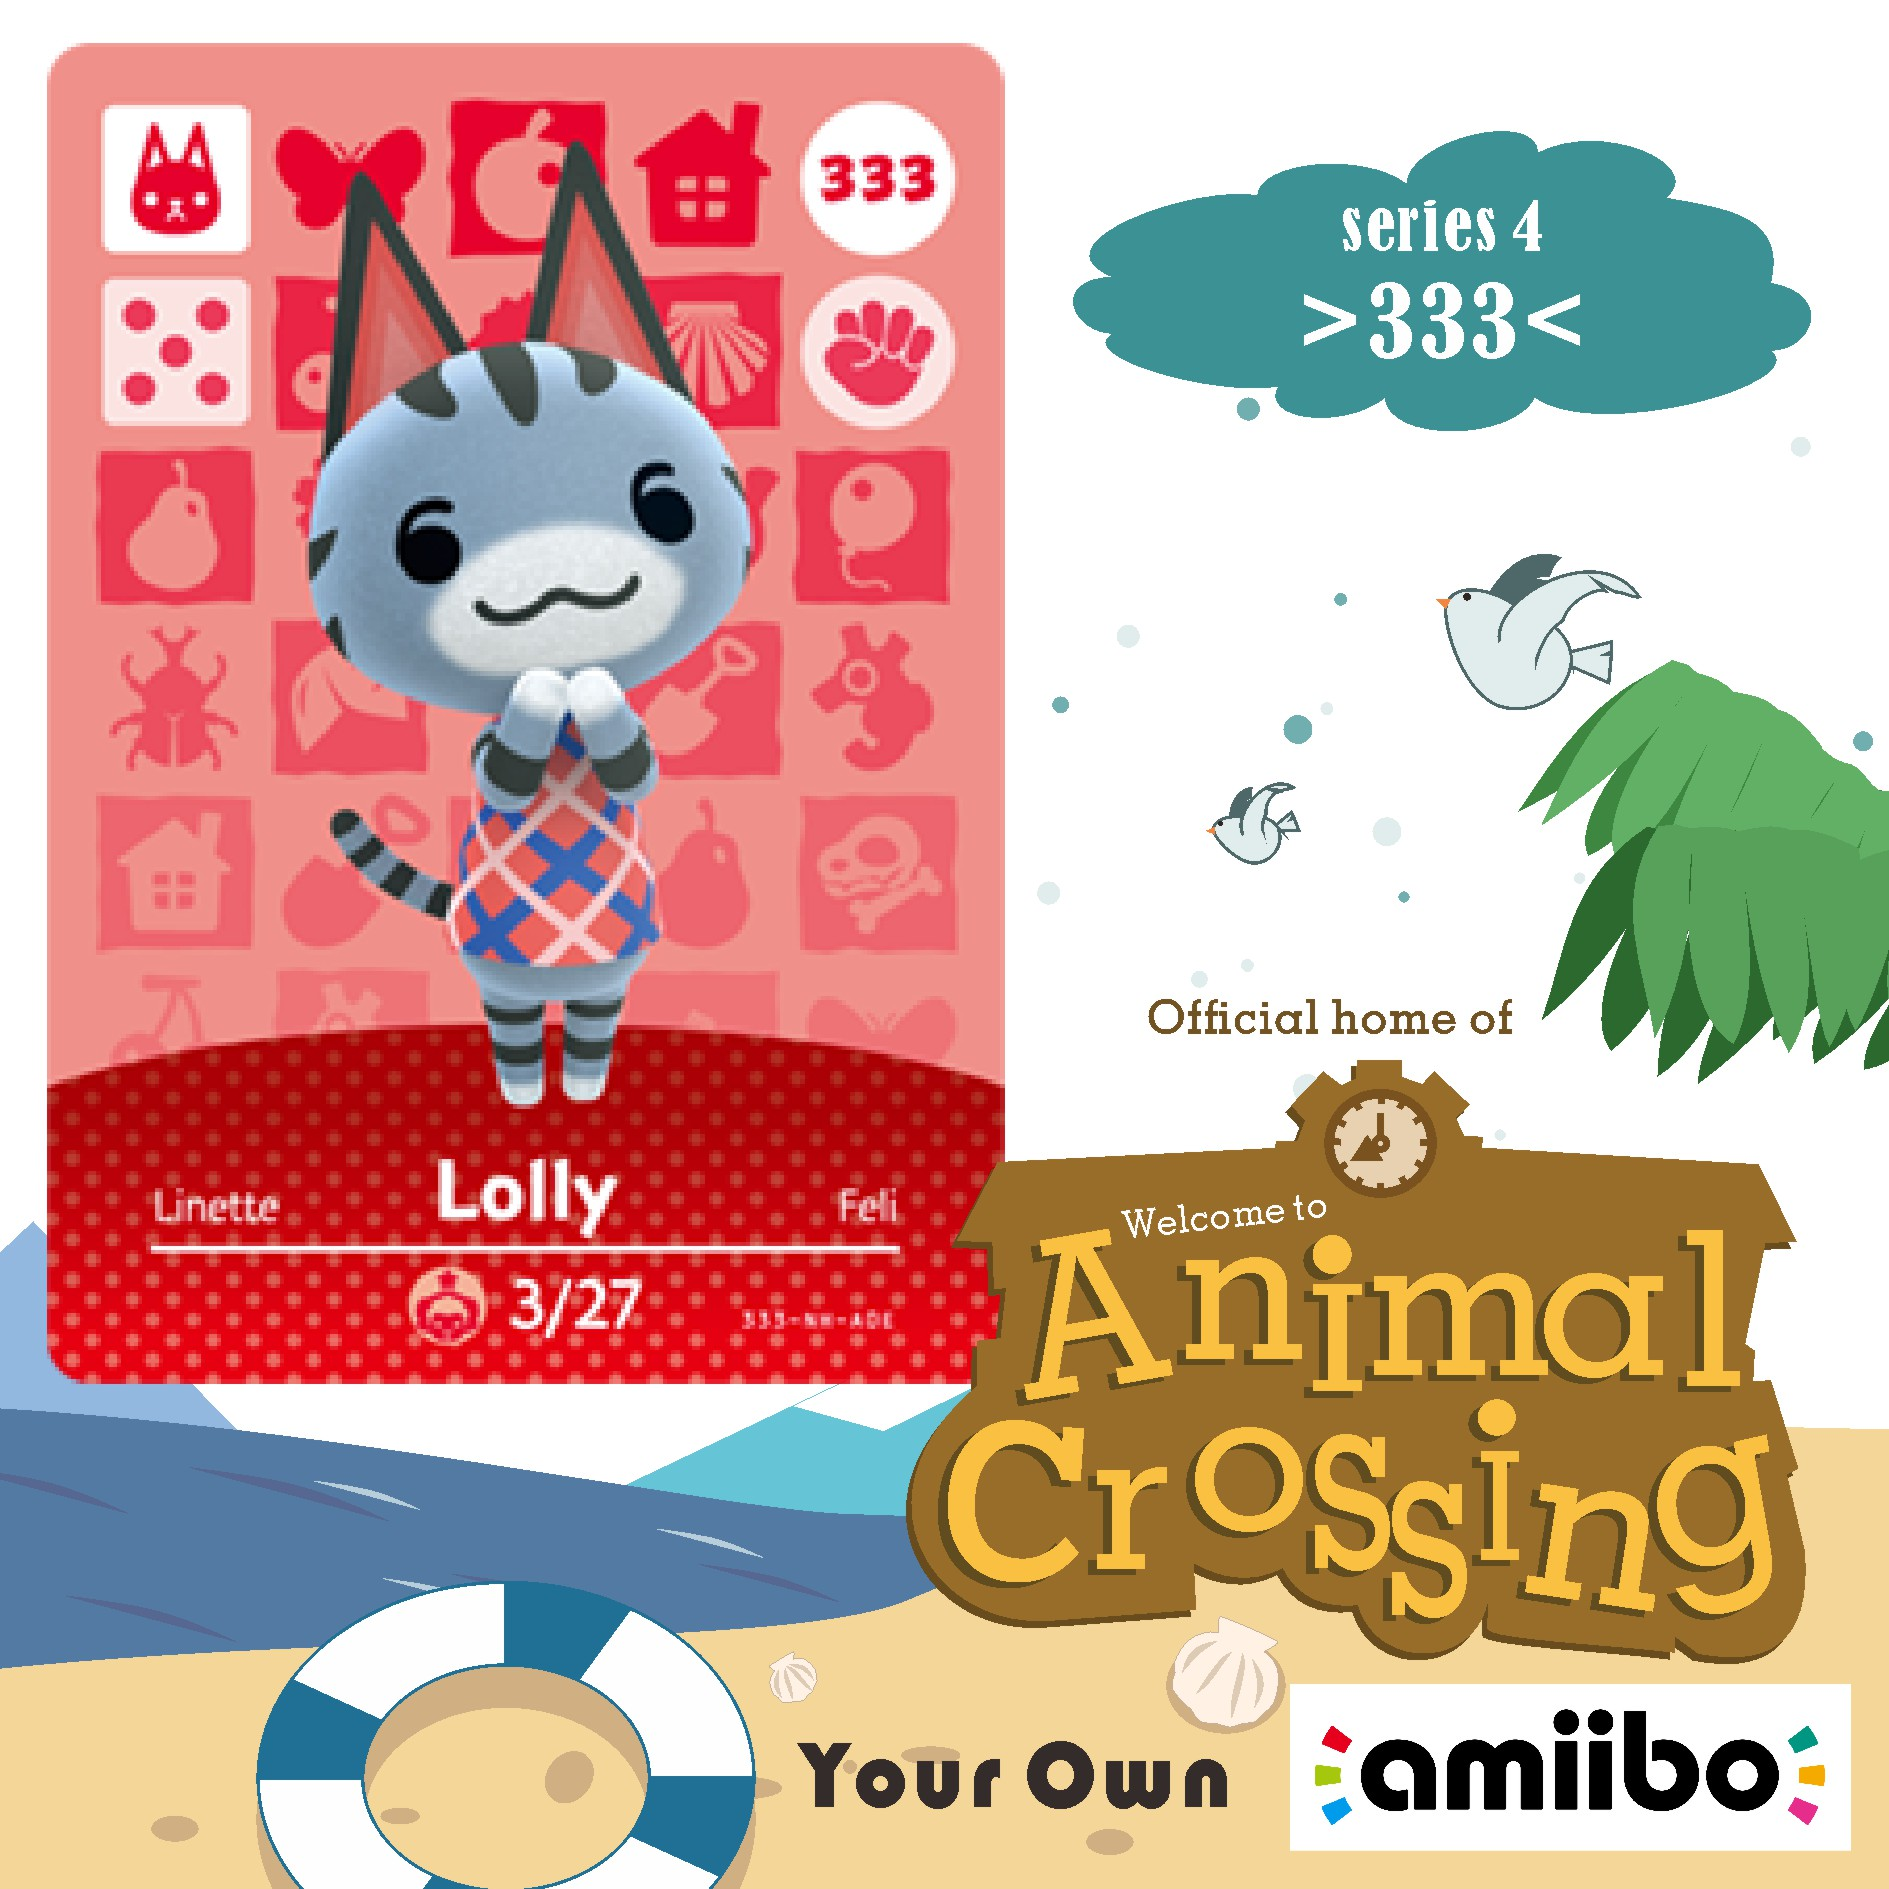 333 Animal Crossing Lolly Animal Crossing Amiibo Lolly Amiibo Lolly  Villager Amiibo Card New Horizons NFC Card For NS Games